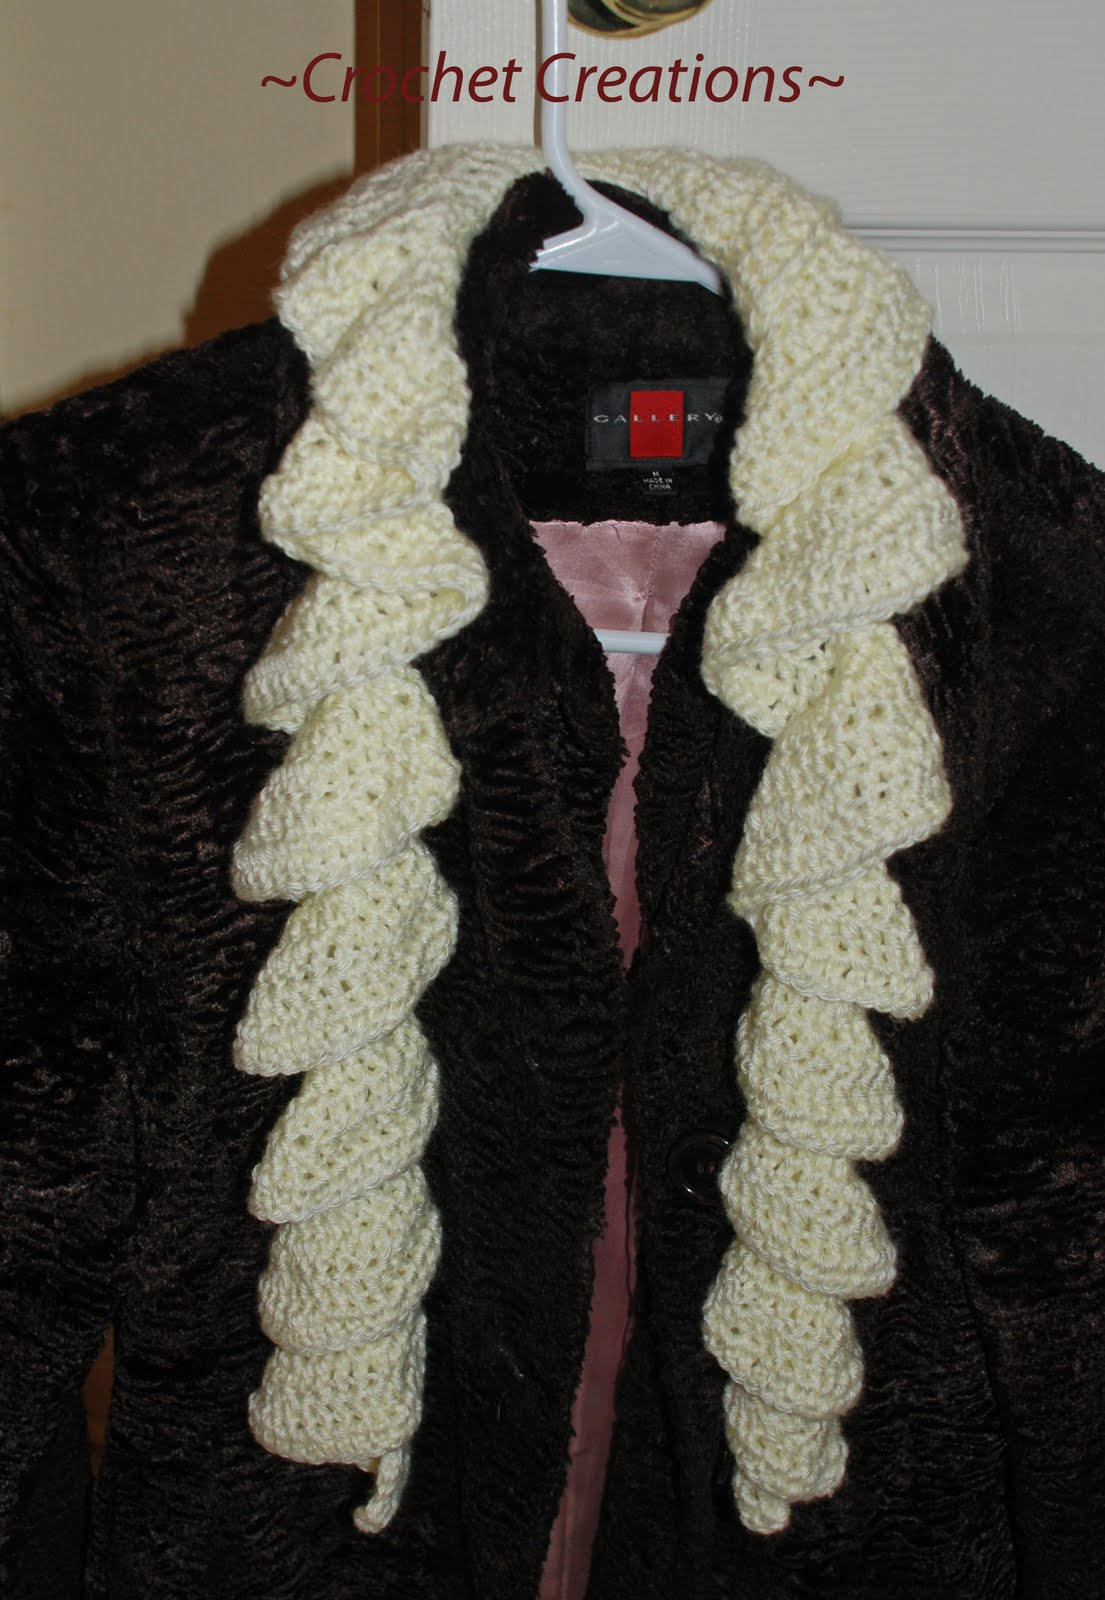 Crochet Patterns Ruffle Scarf : FREE CROCHET PATTERNS OF SCARFS Crochet Tutorials